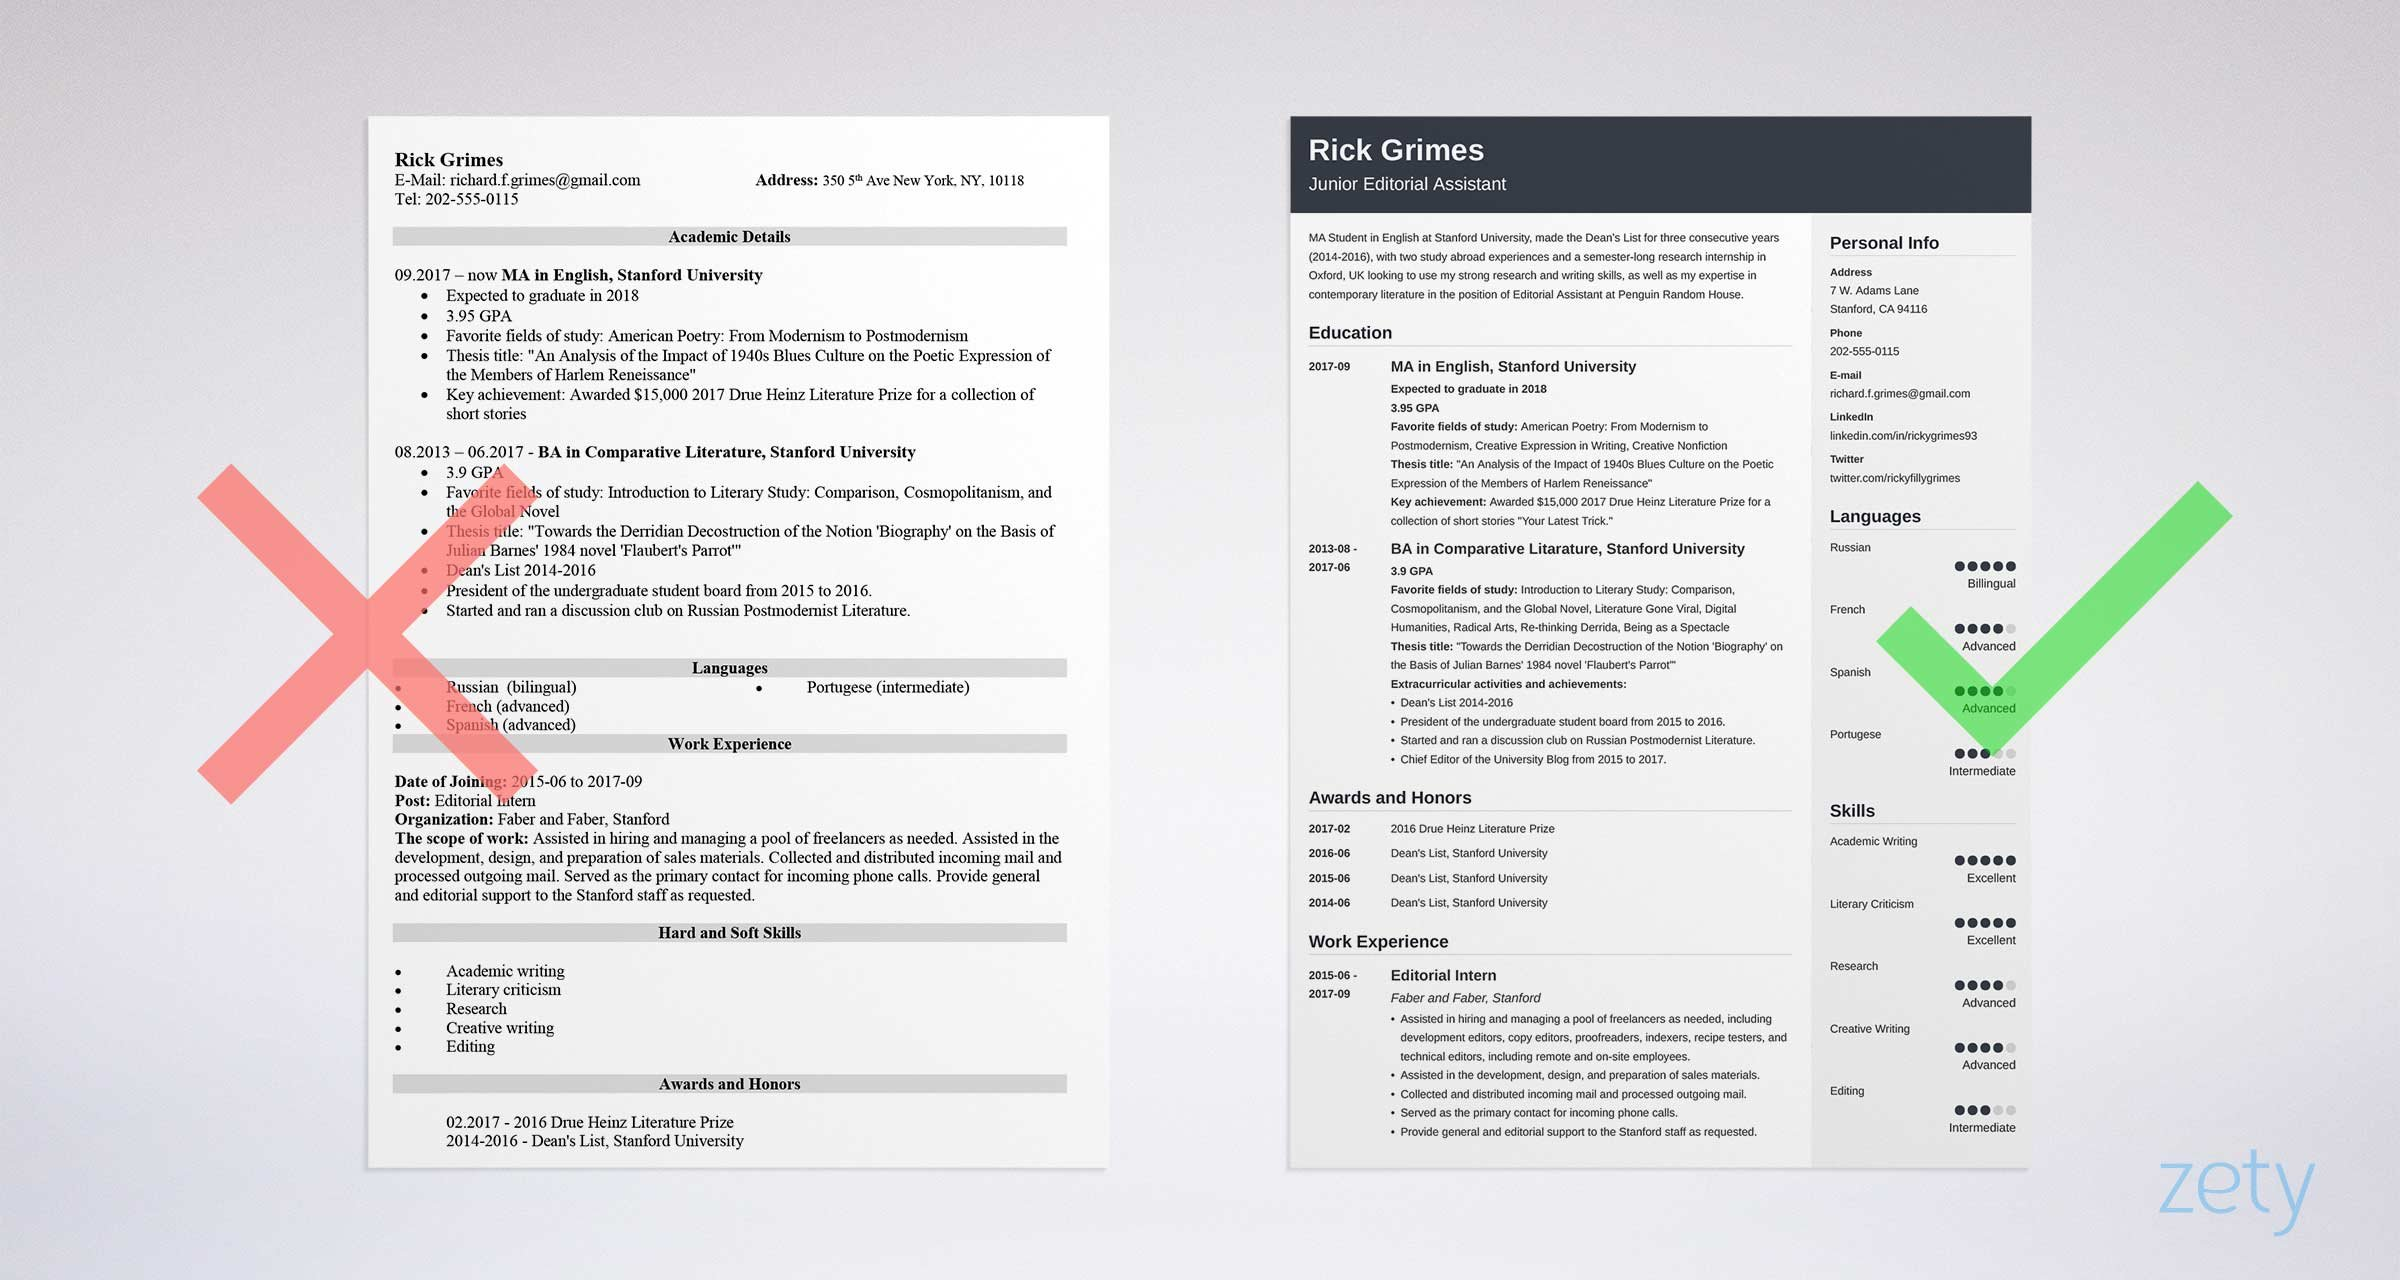 student resume examples templates for all students best title freshers size of font Resume Best Resume Title Examples For Freshers